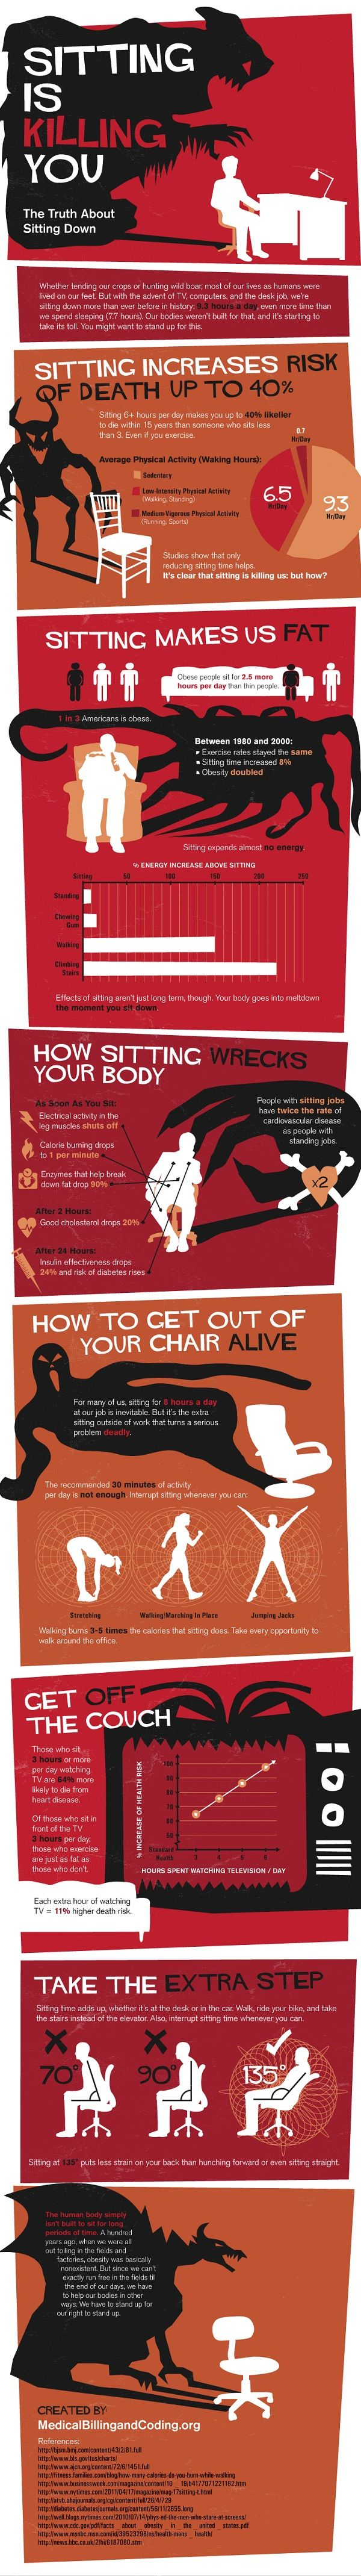 Sitting is killing you...infographic...